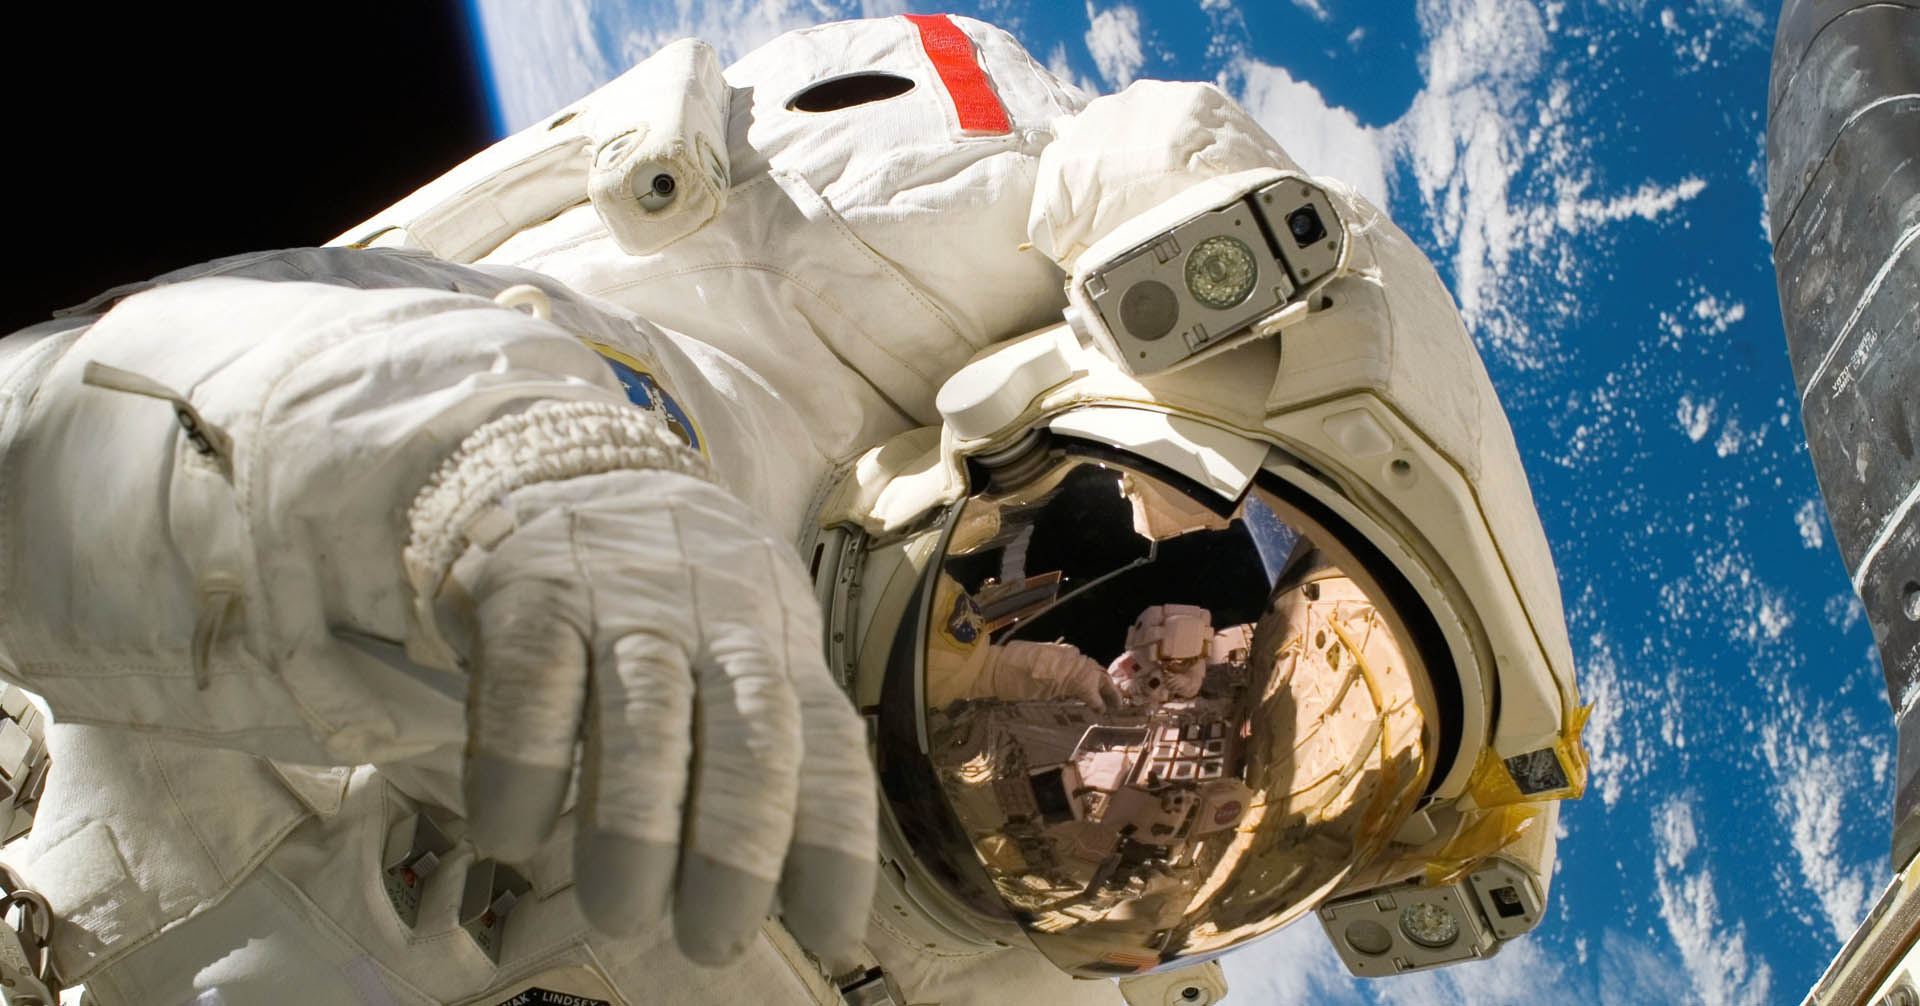 Space Exploration and Science Fiction